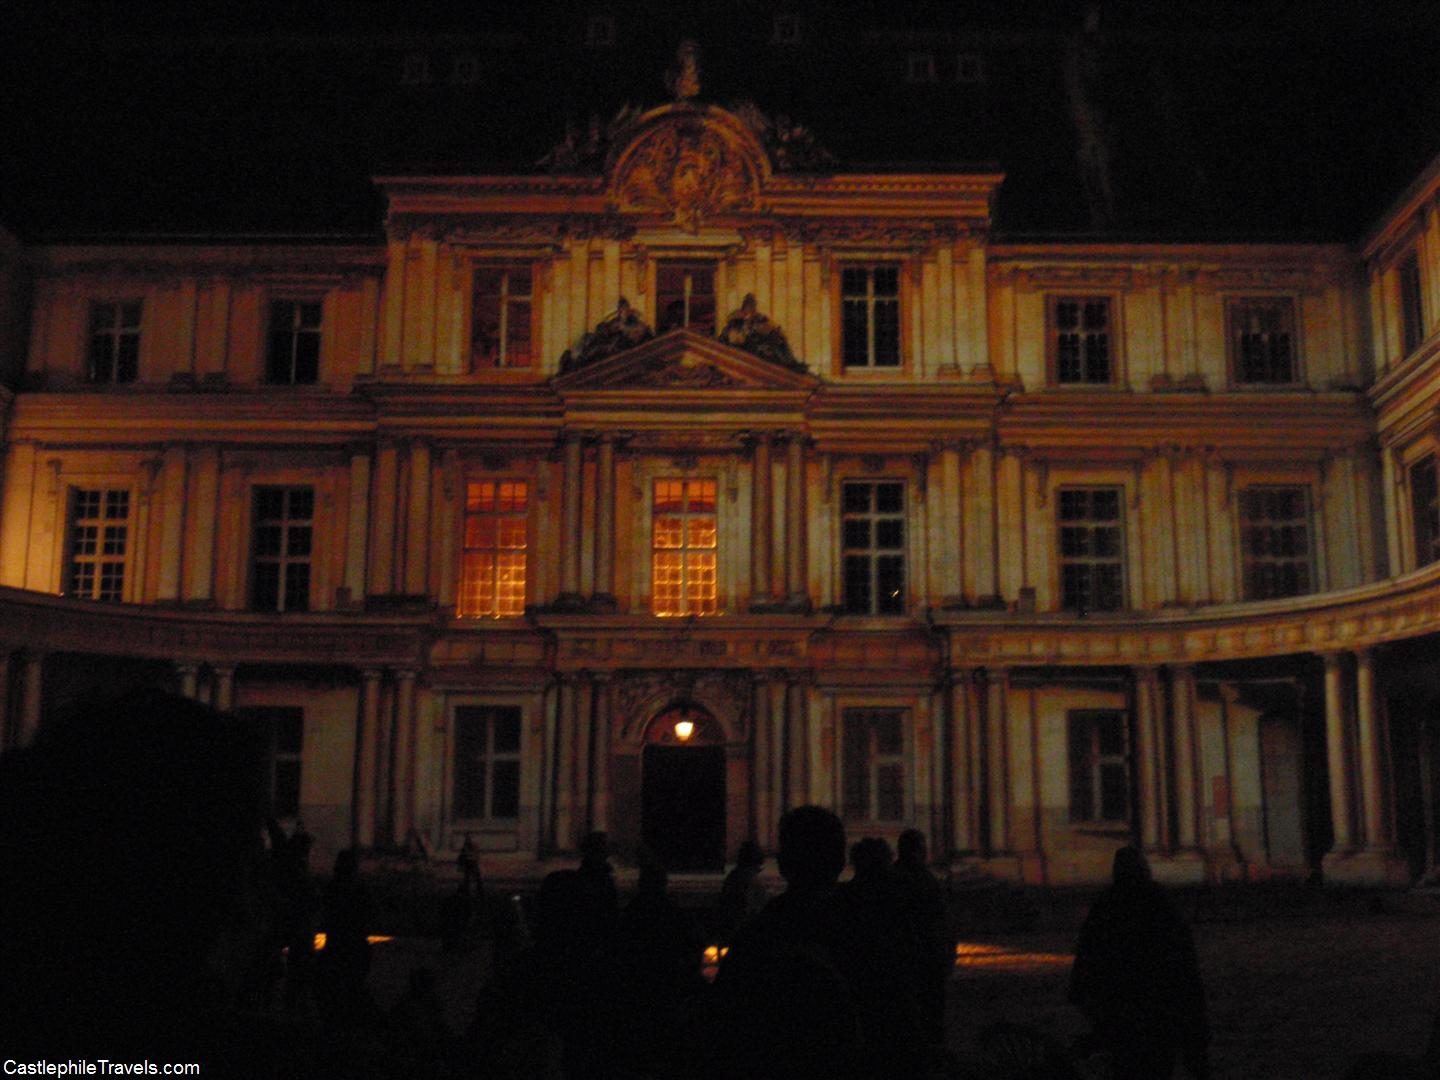 The Sound and Light Show at Château de Blois